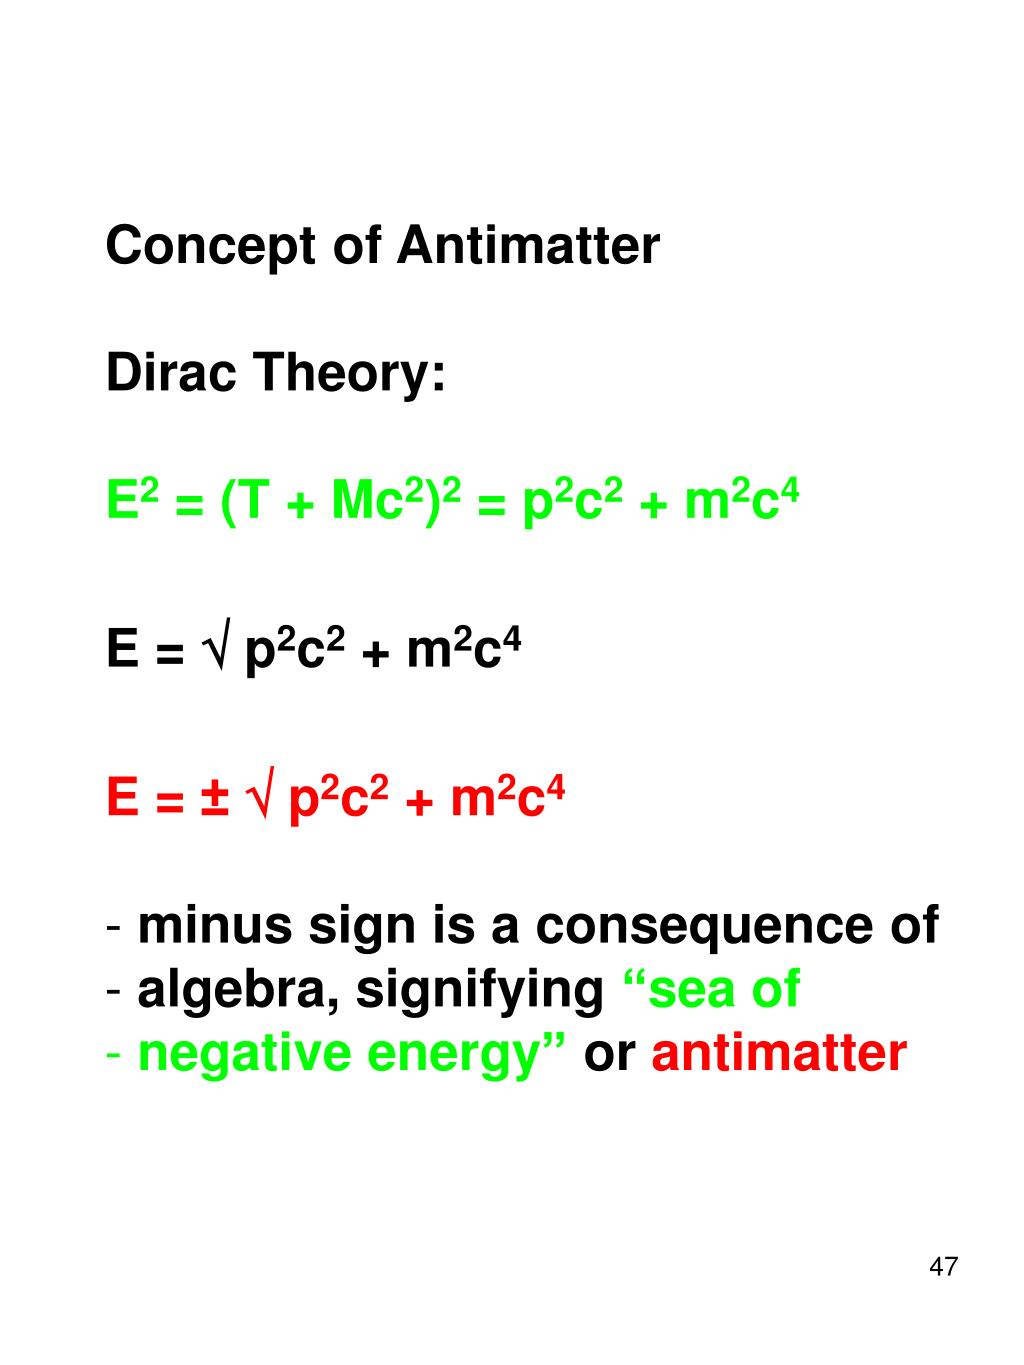 Concept of Antimatter